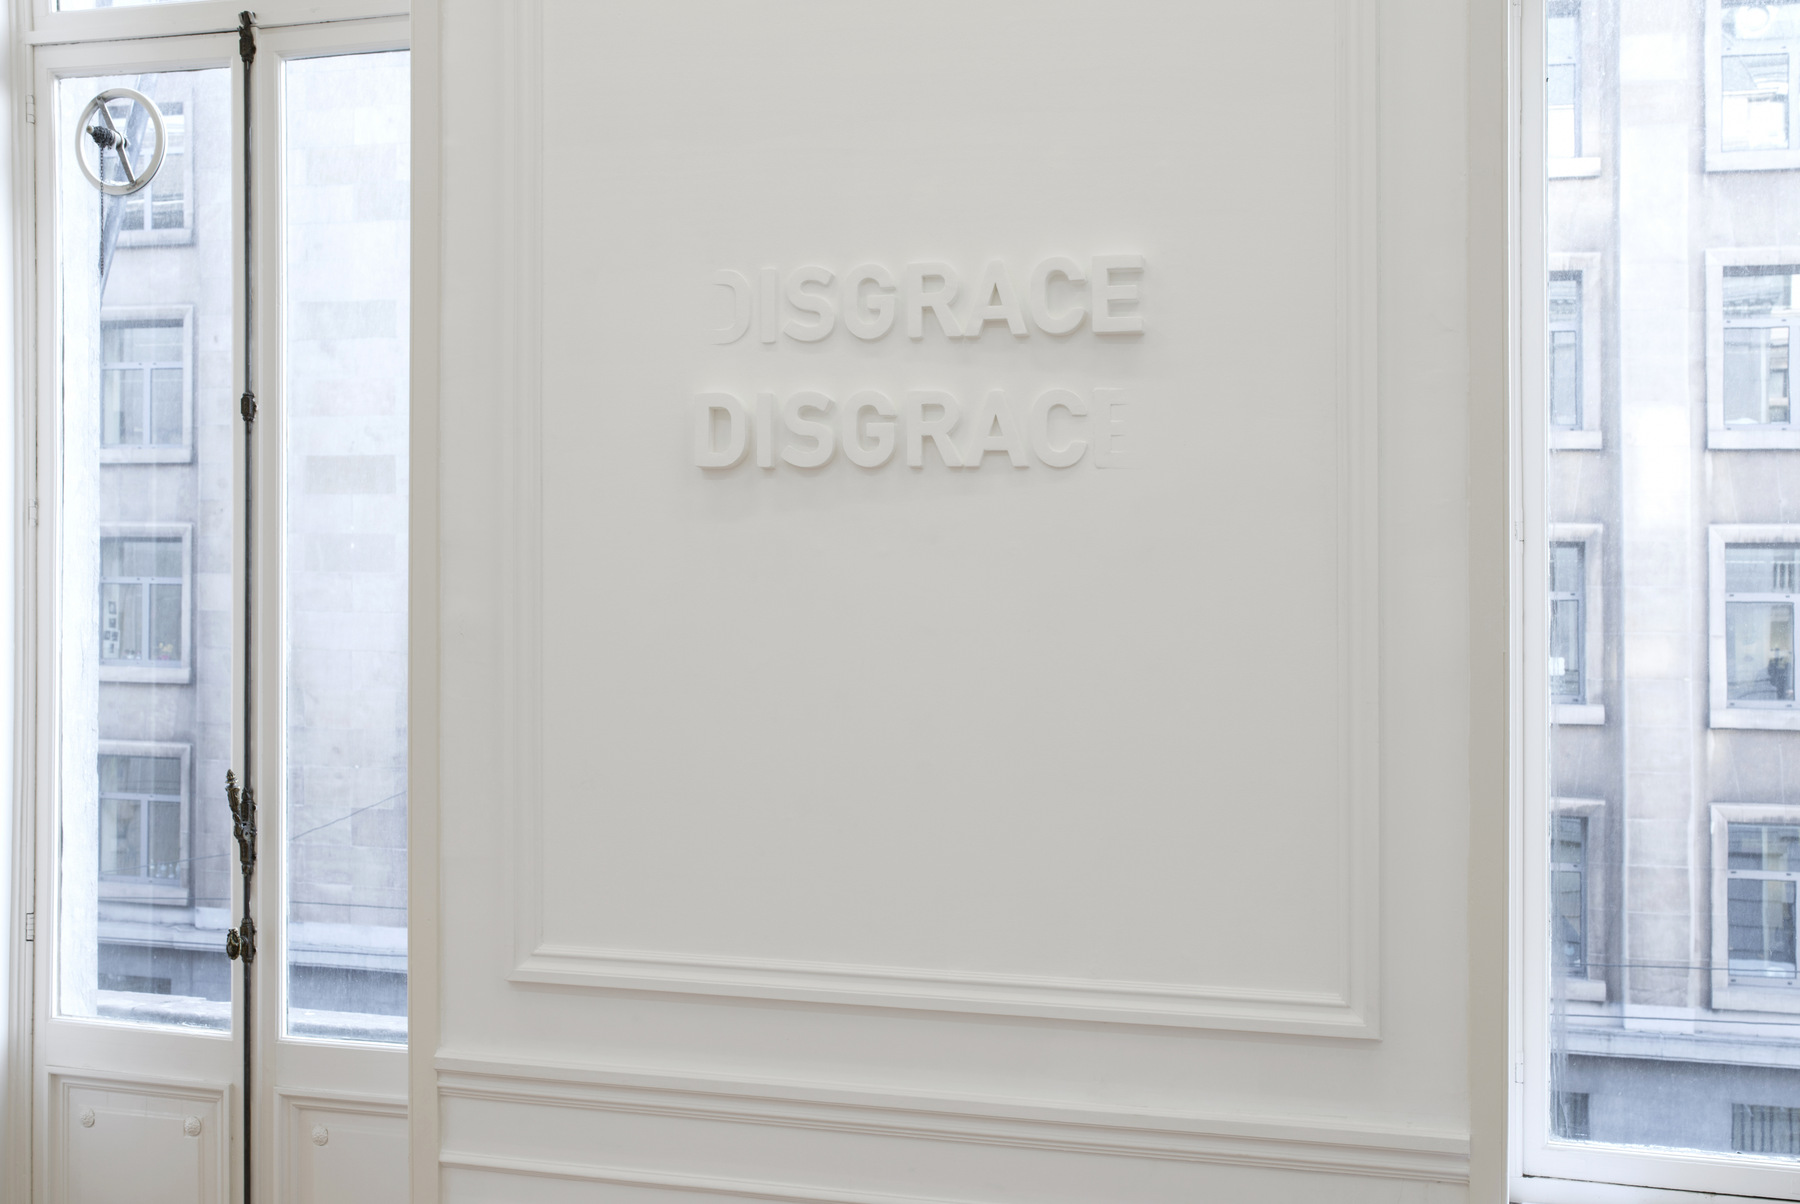 Melik Ohanian, Deviation (01) — Disgrace, 2014, Letters in polystyrene and plaster, 60 x 120 cm, 1_3